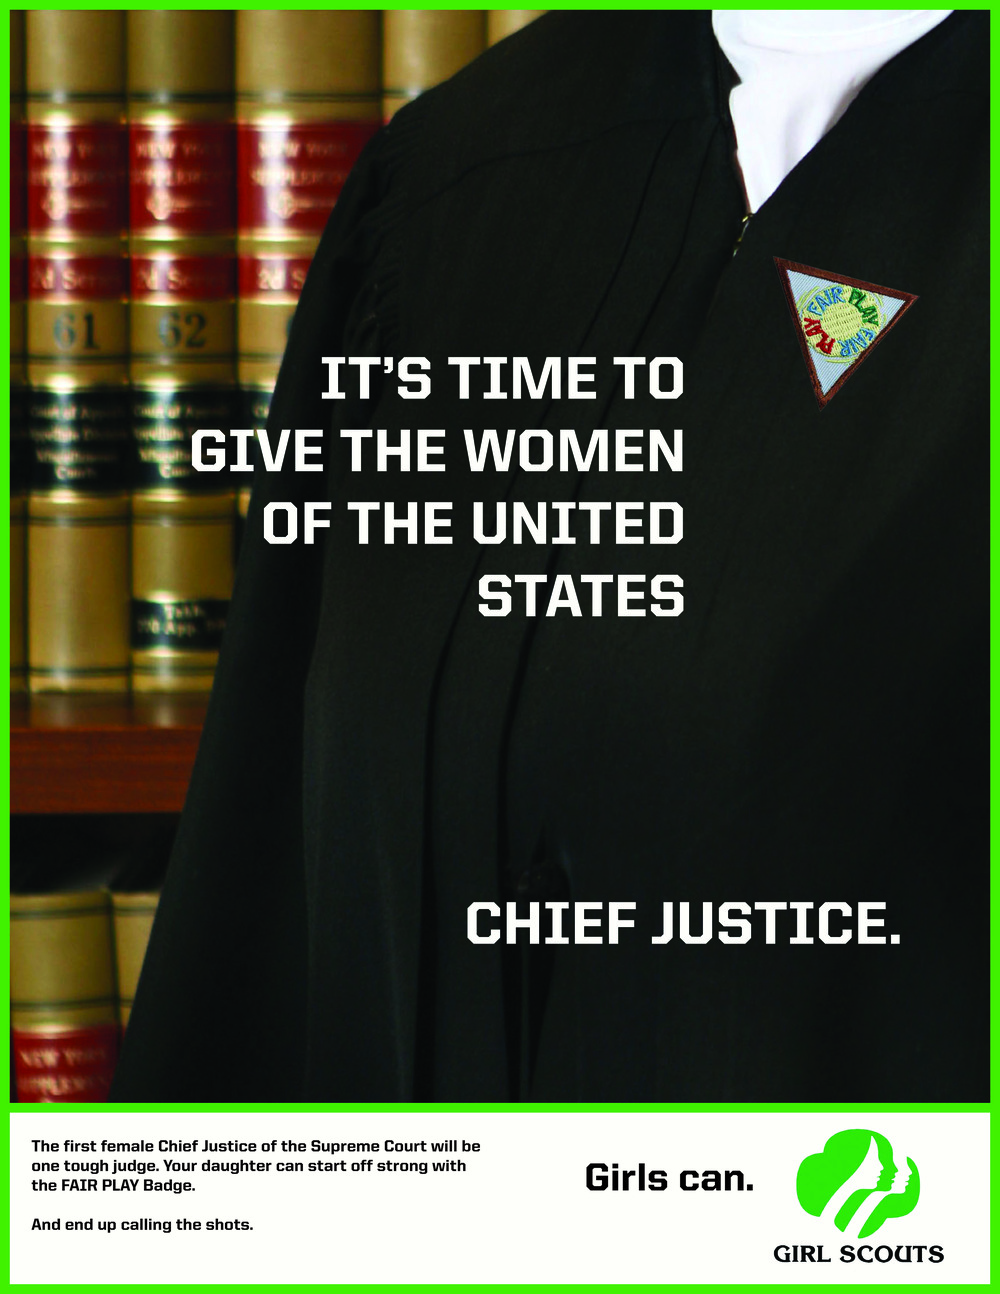 The first female Chief Justice of the Supreme Court will be one tough judge. Your daughter can start off strong with the FAIR PLAY Badge.  And end up calling the shots.